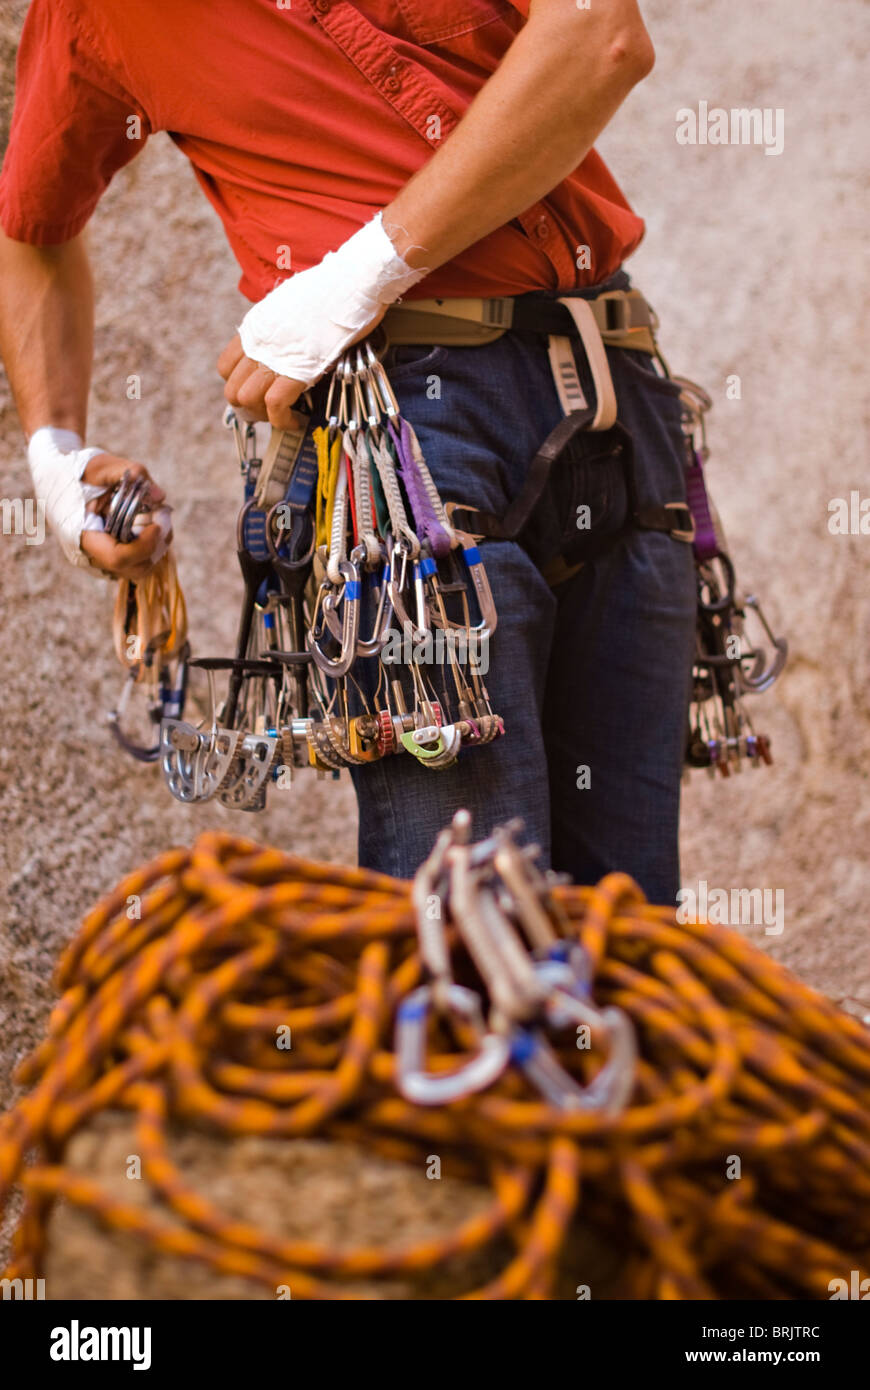 A climber in red prepares to lead climb Caught Inside, a route rated 5.10b. - Stock Image